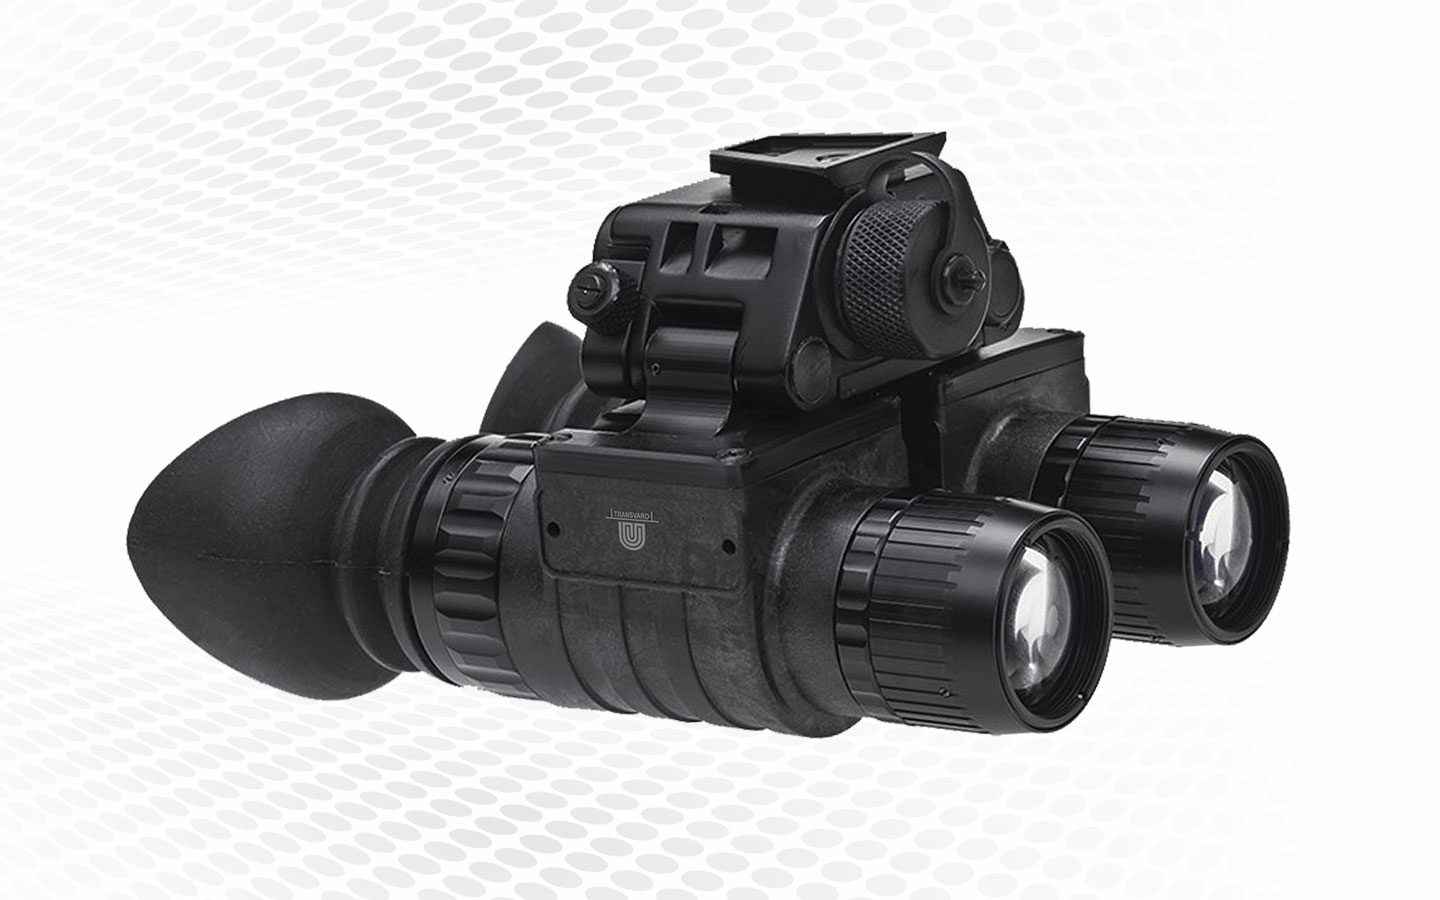 TV BIN 3 Night Vision Binocular